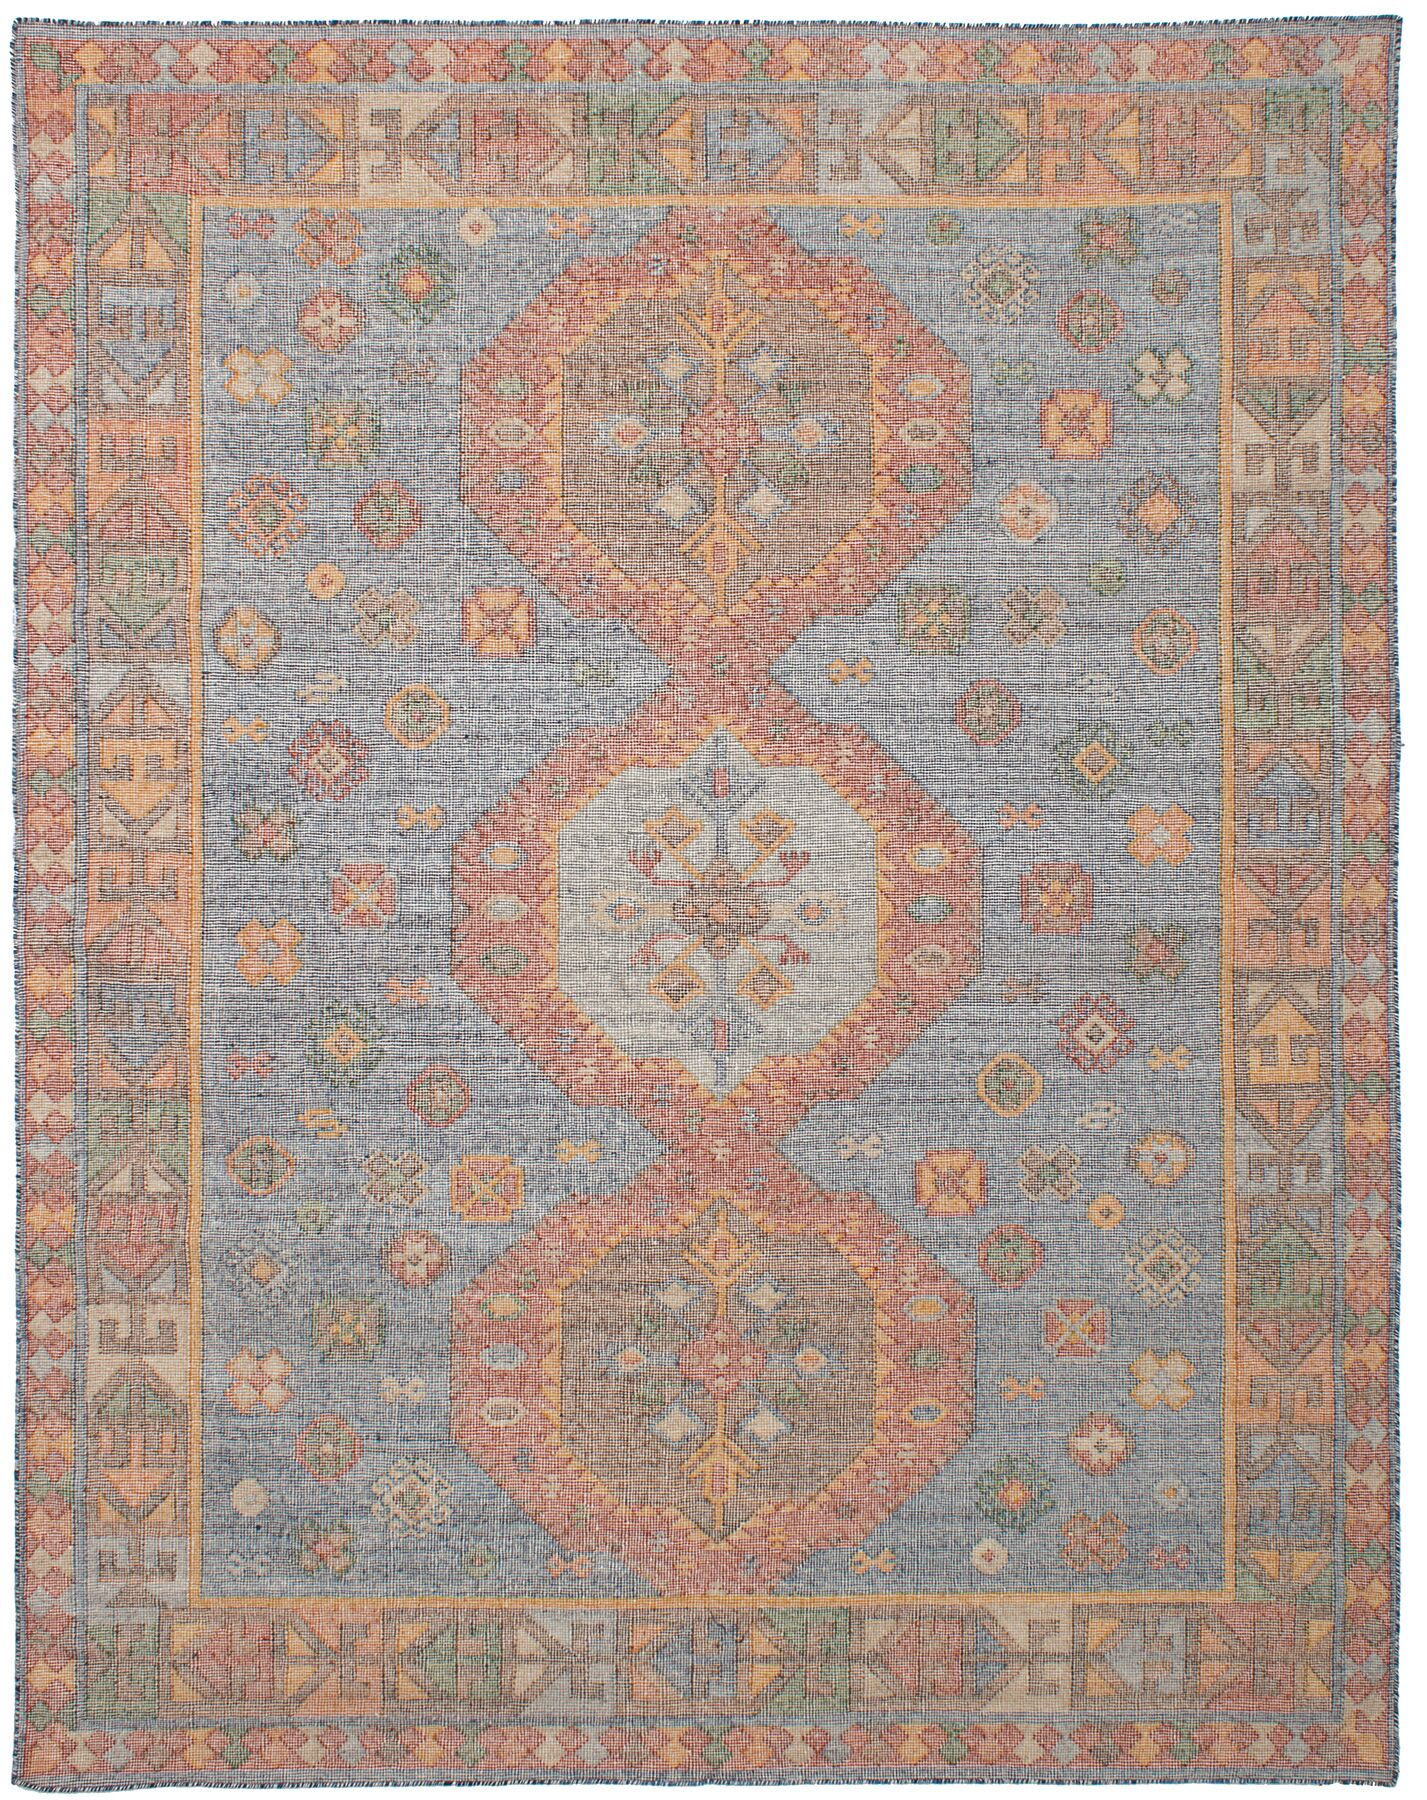 Bevers Hand Flat Woven Wool Blue Area Rug Rug Size: Rectangle 8'0